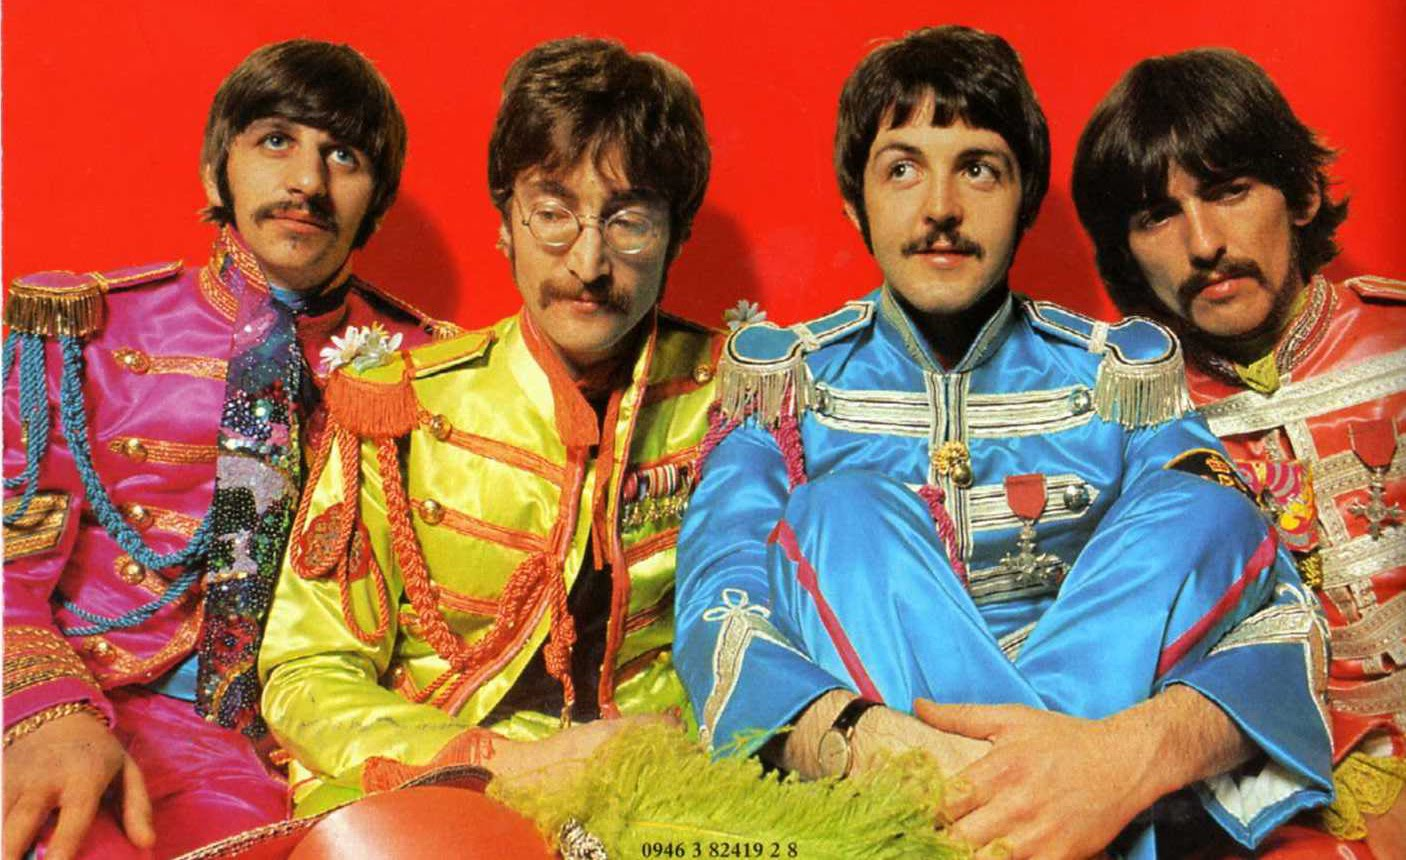 The Beatles Sgt Pepper To Be Reissued As Part Of Special